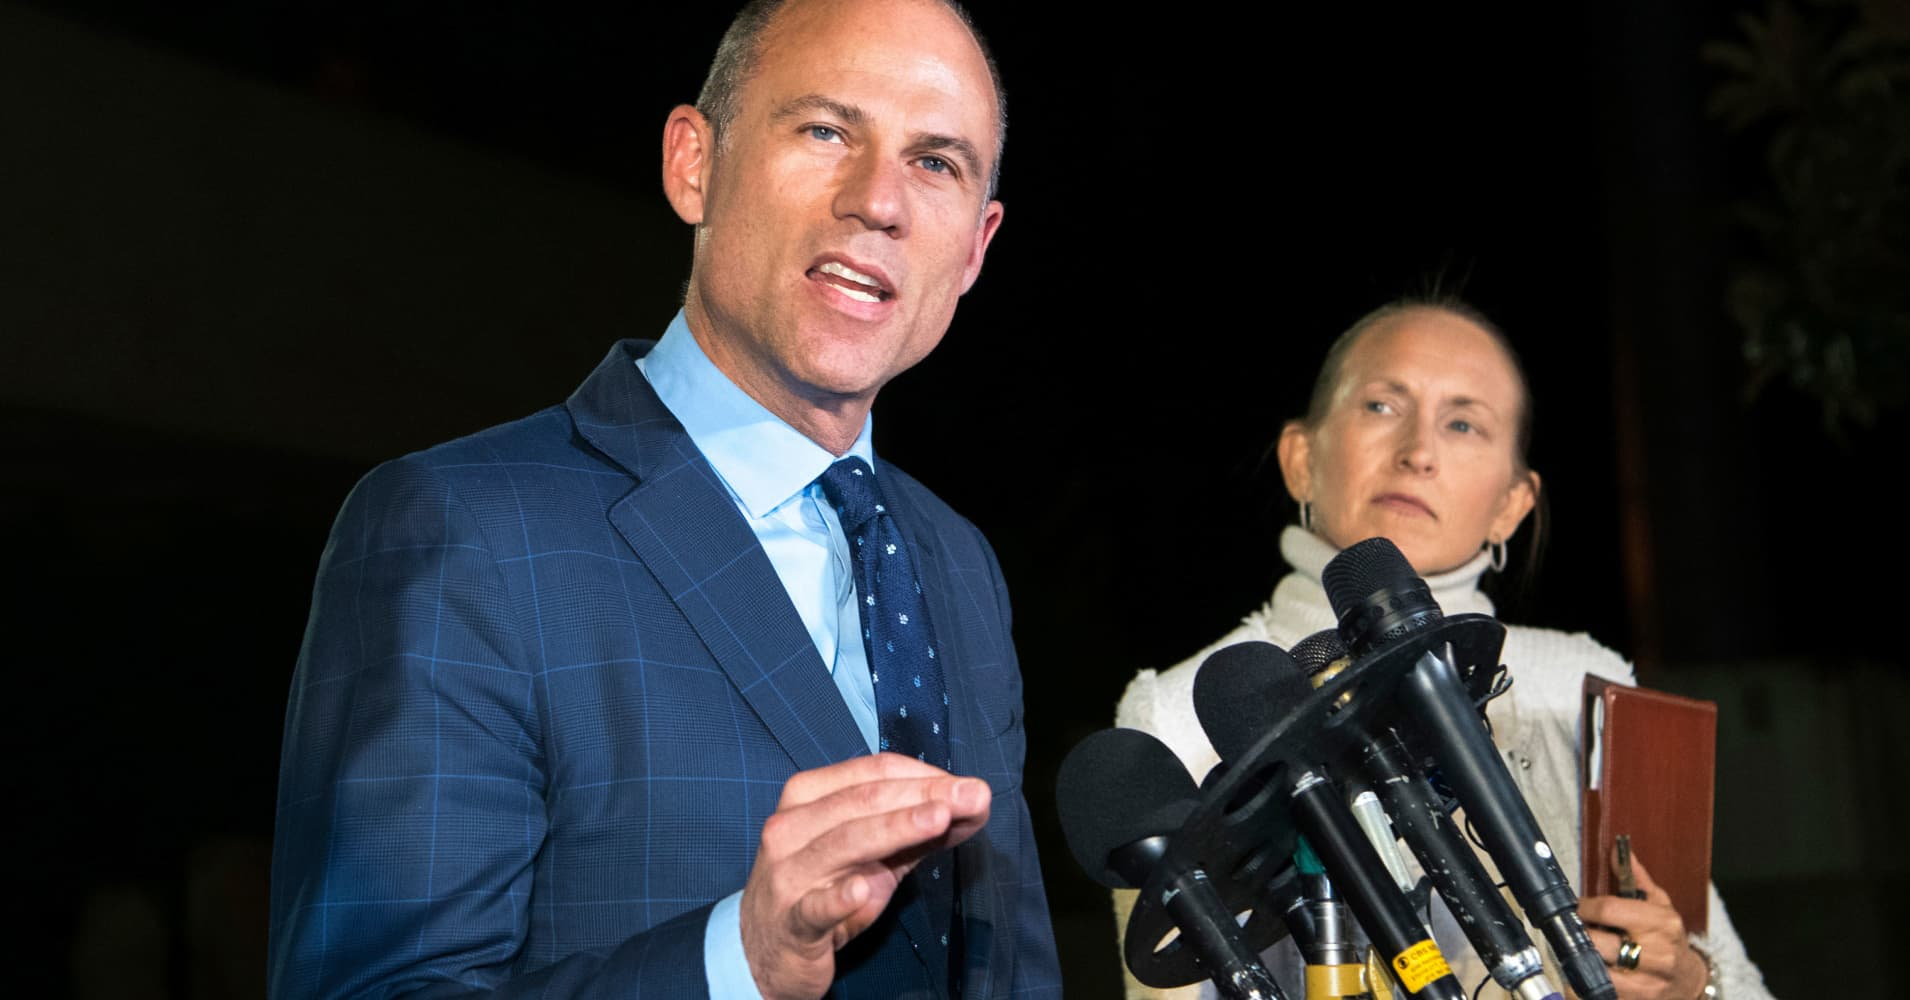 Michael Avenatti denies domestic violence claim as wives support him